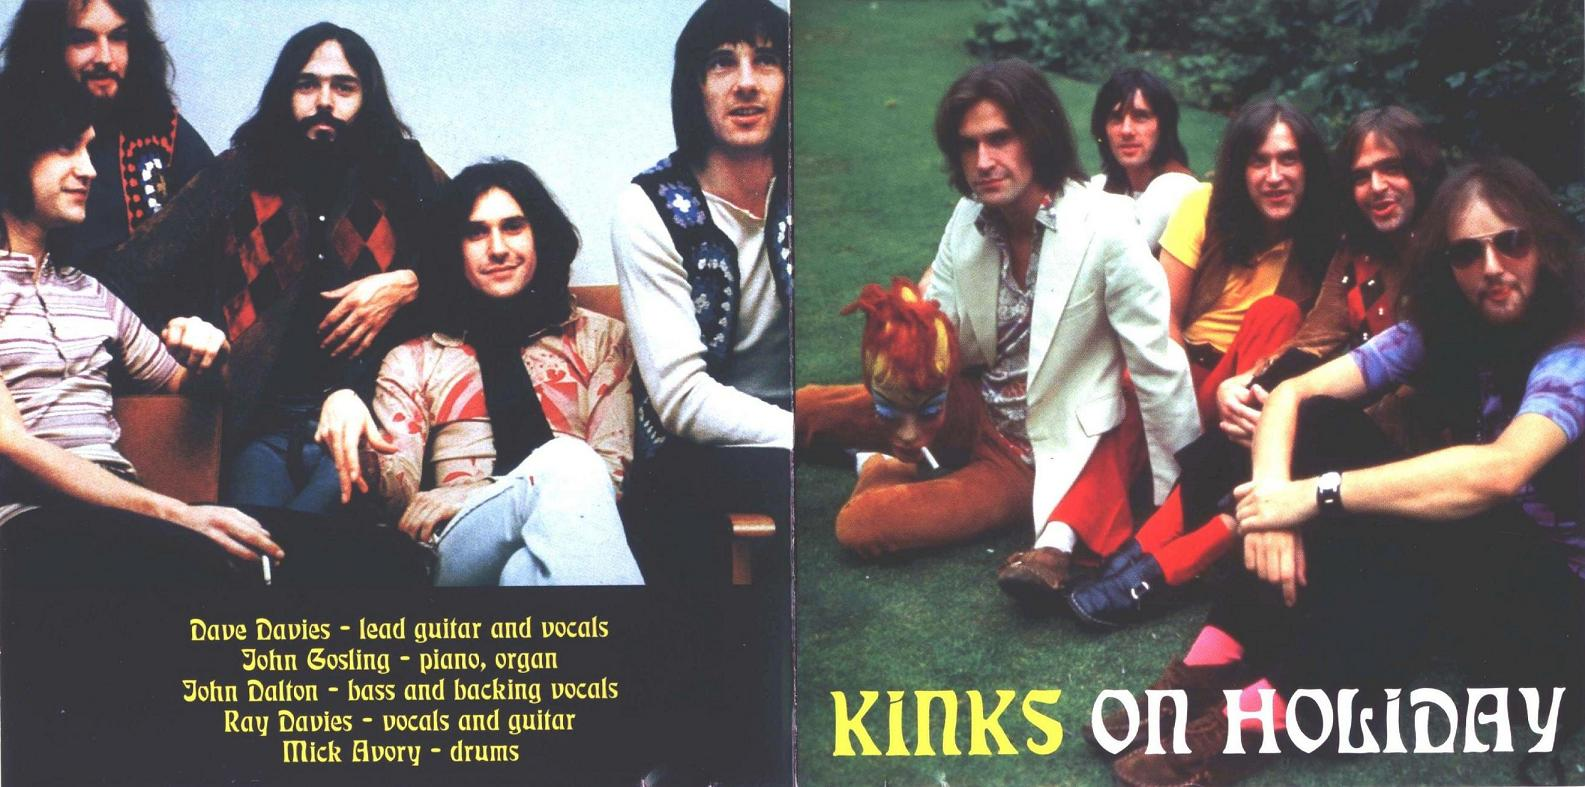 1972-01-21-KINKS_ON_HOLIDAY-front